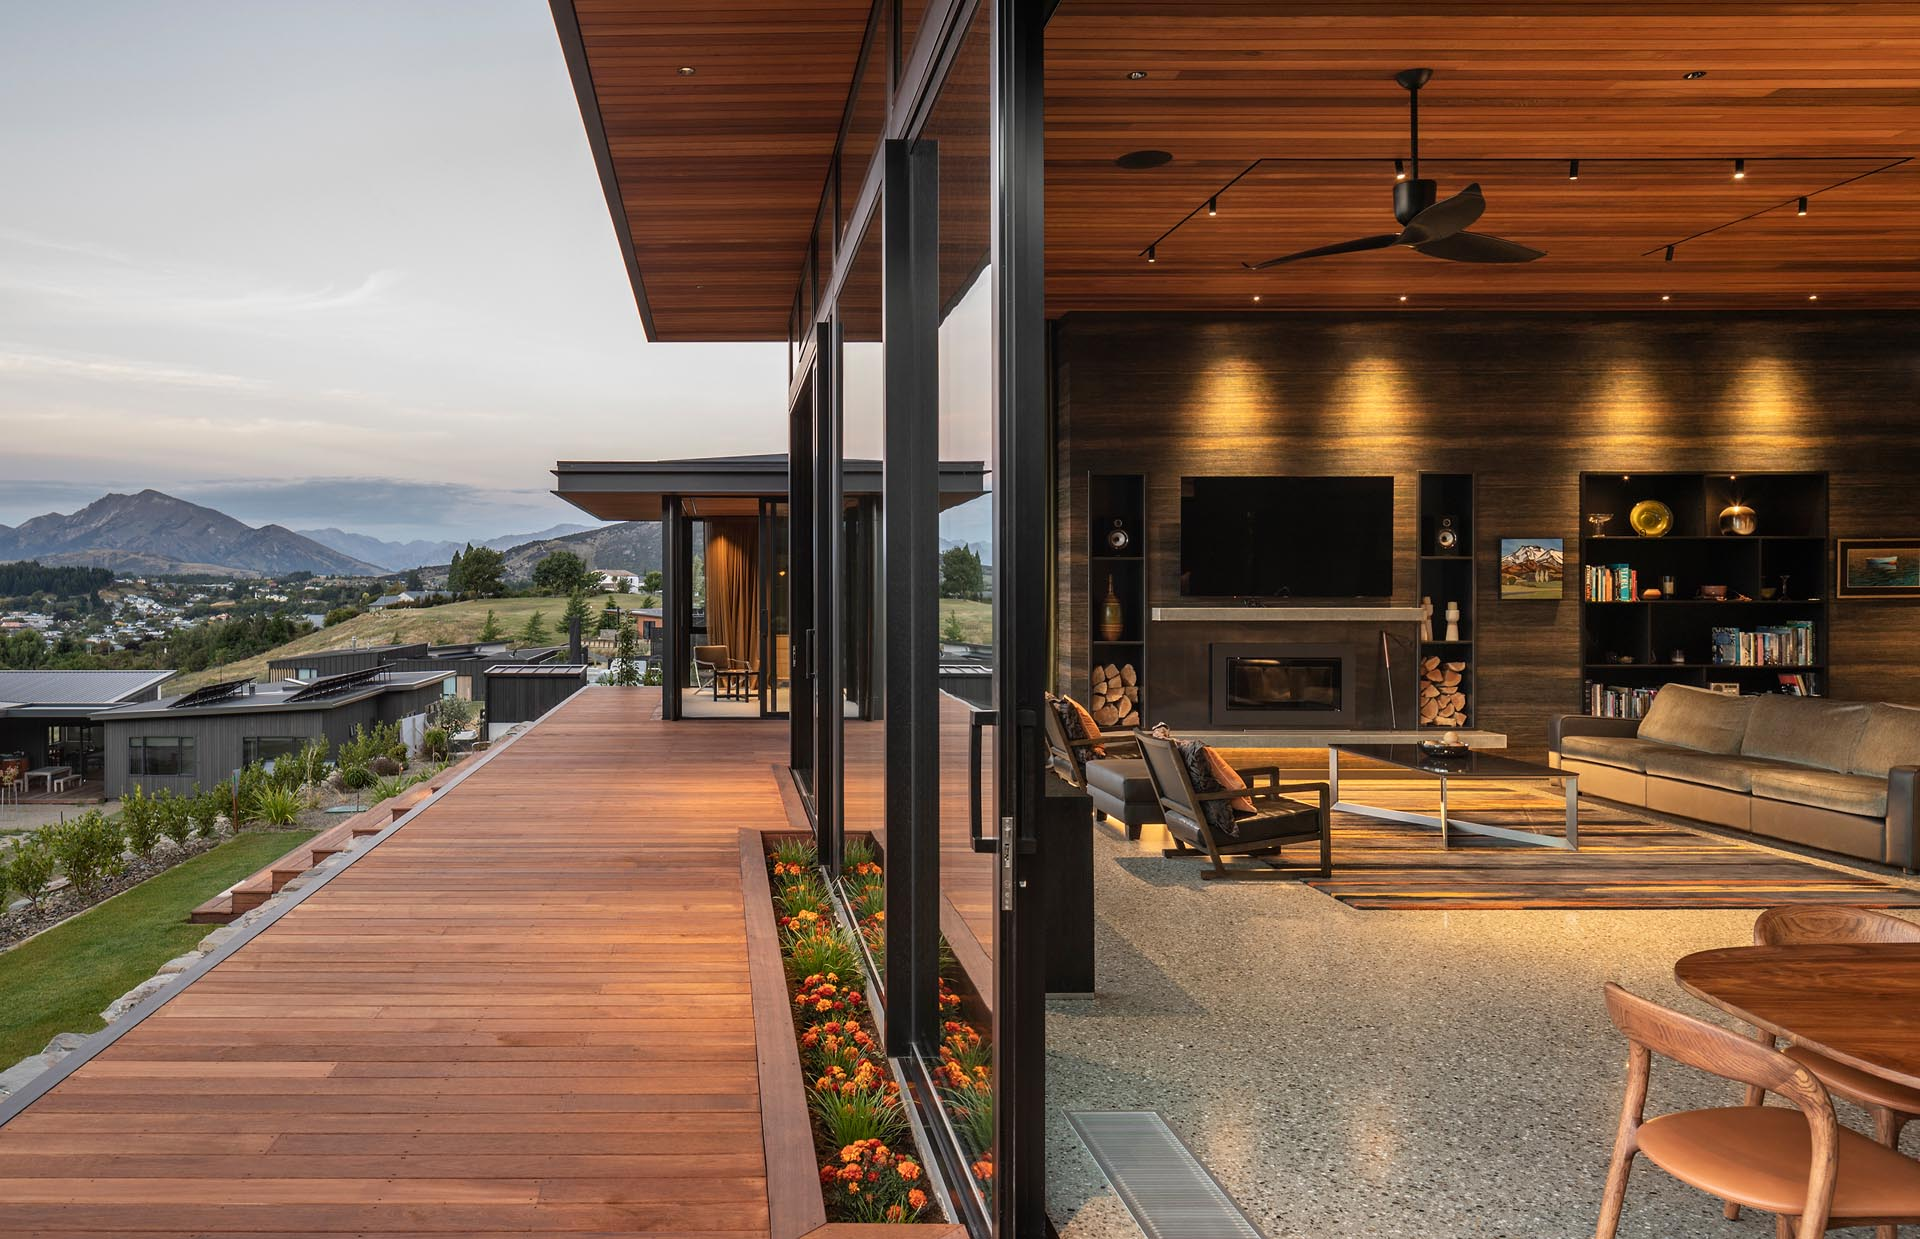 A deck with steps that lead down to the yard also connect with the interior spaces as well as a courtyard.